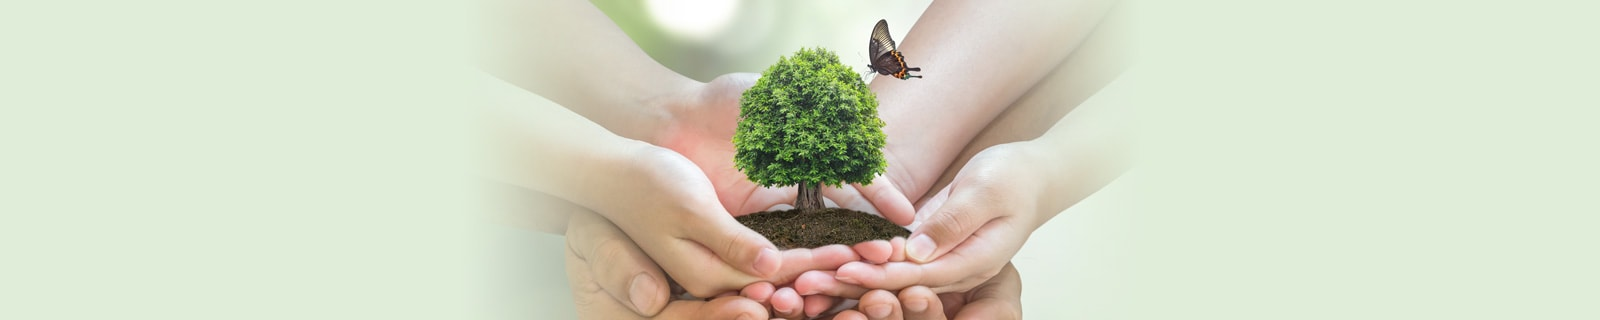 hands holding a small tree and a butterfly flying above